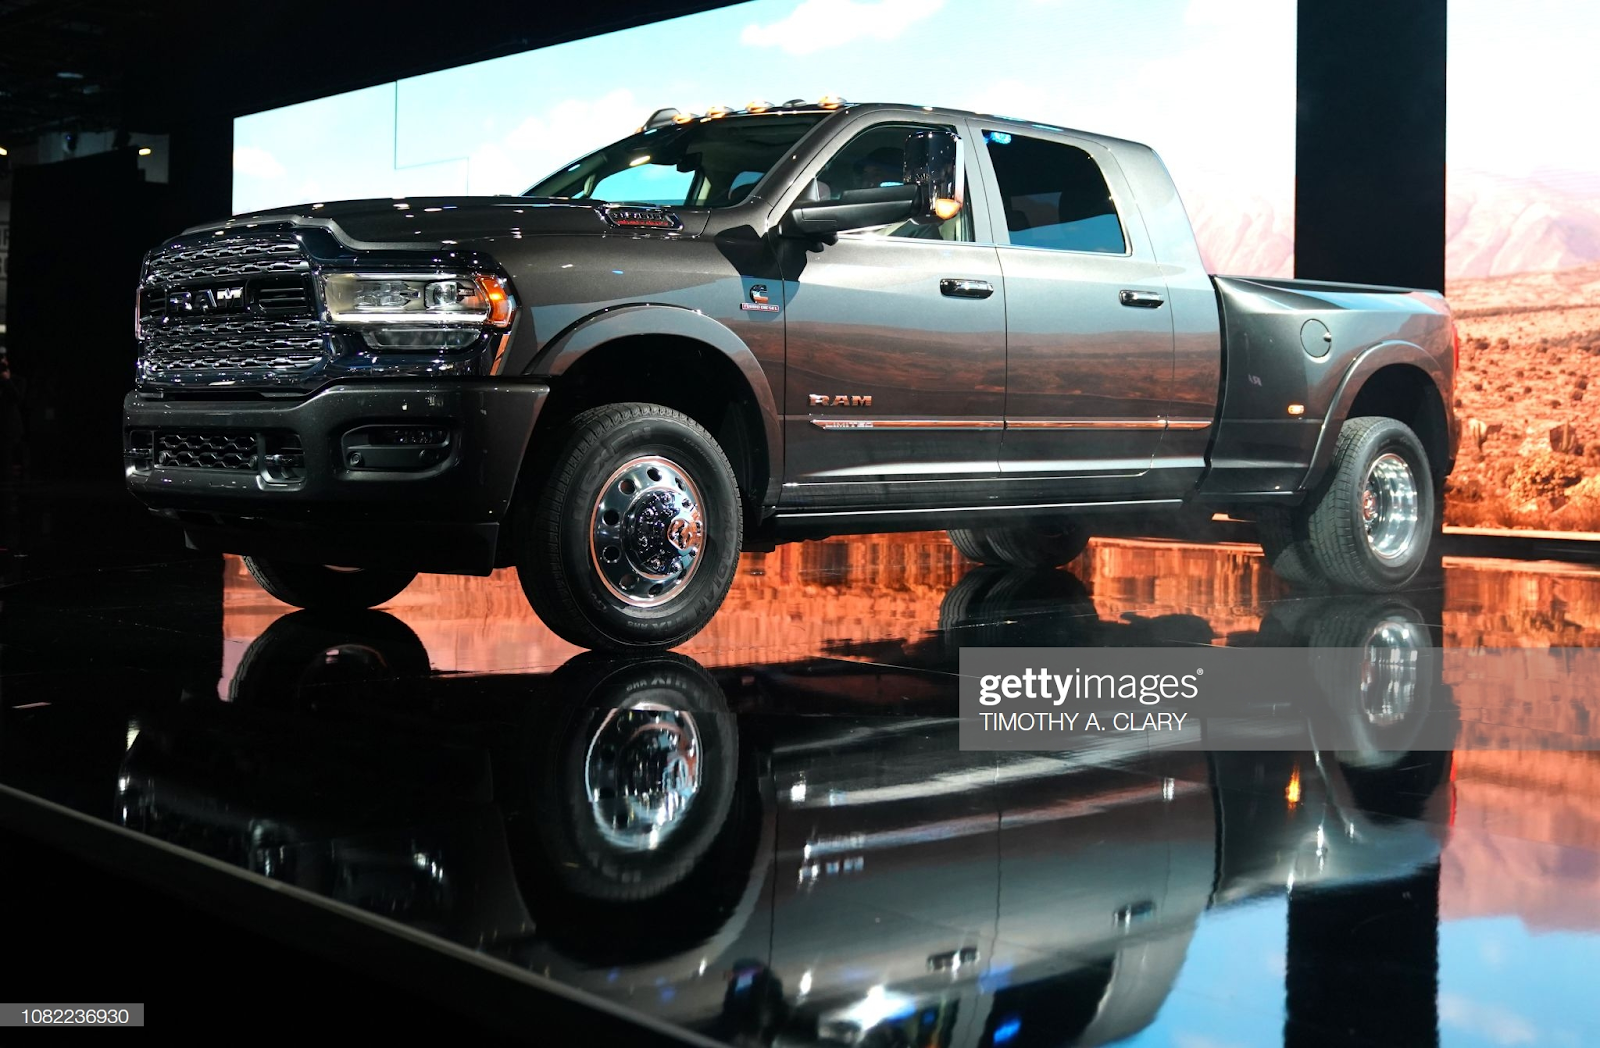 A Ram truck sitting on a stage.